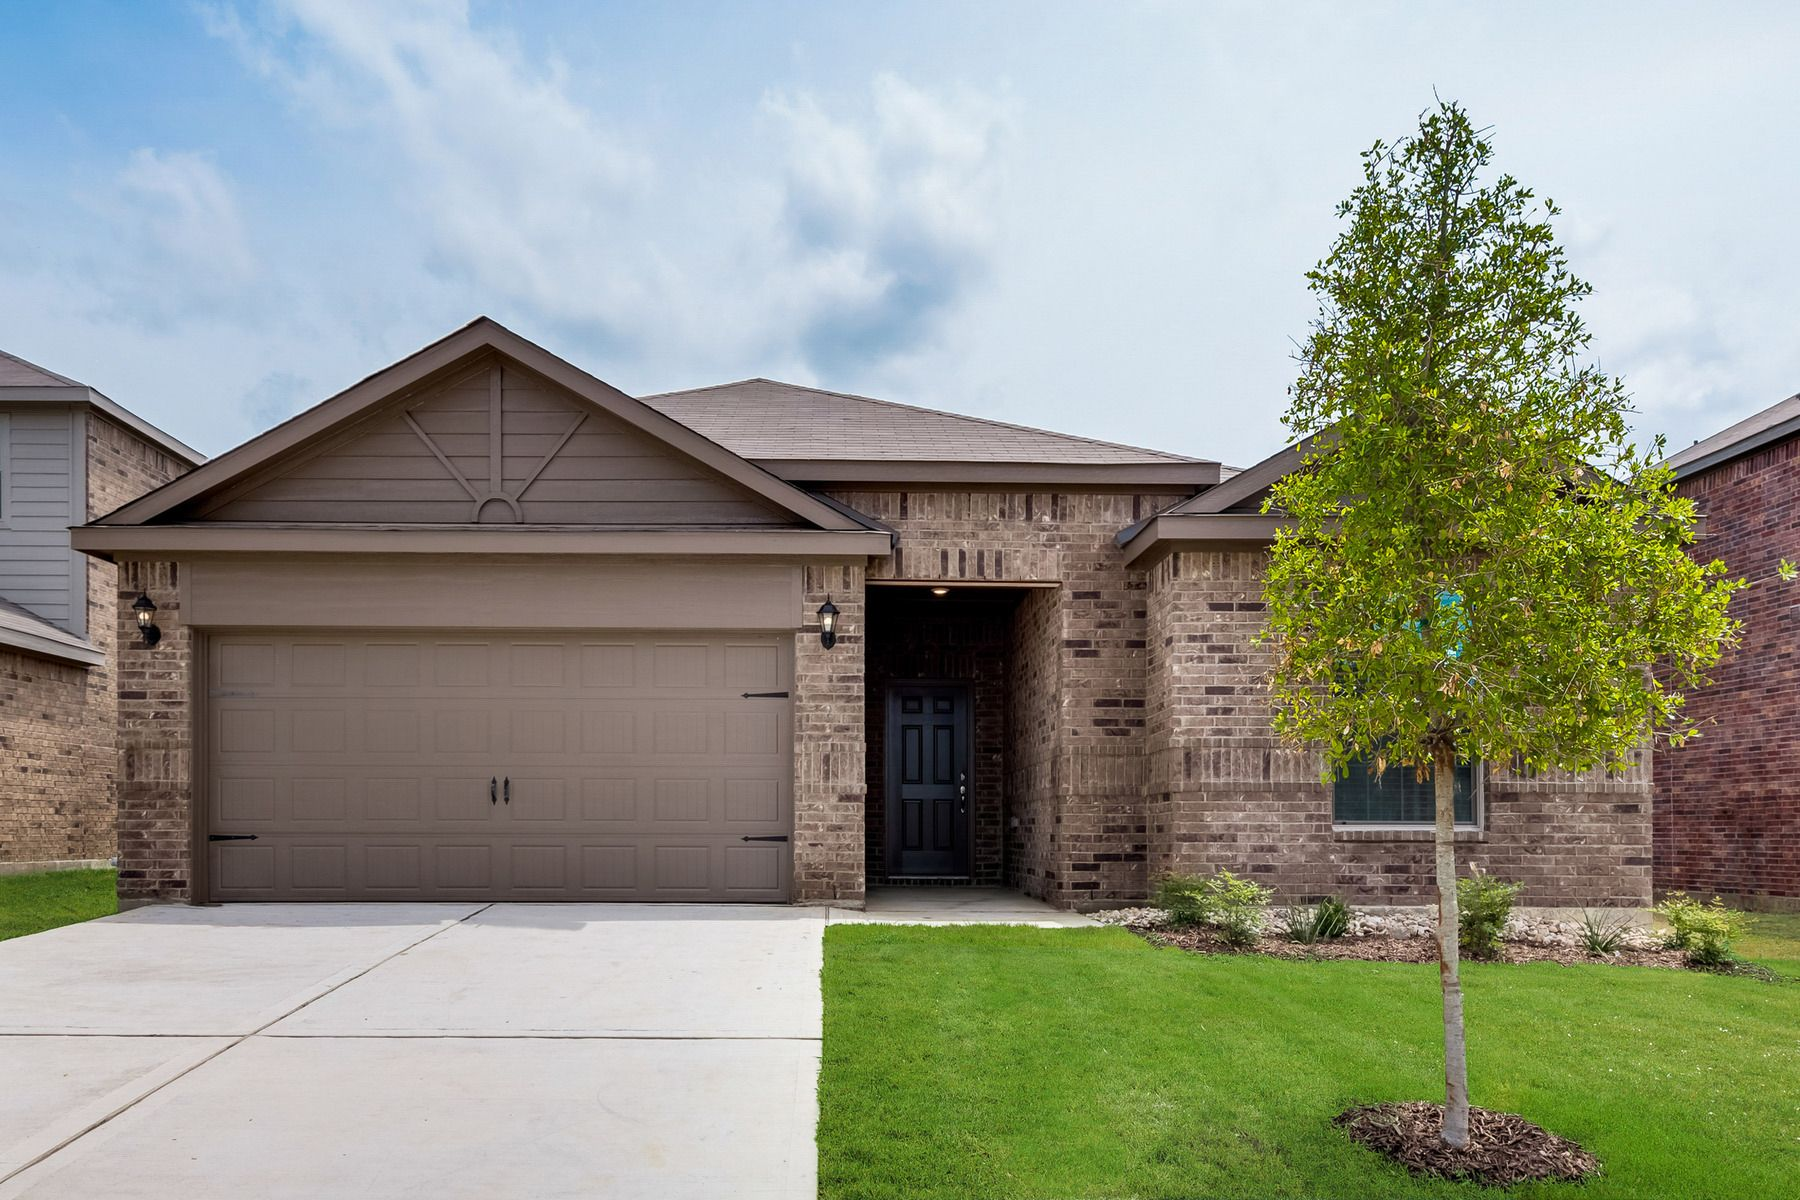 The Reed by LGI Homes:The Reed is a beautiful single-story home!